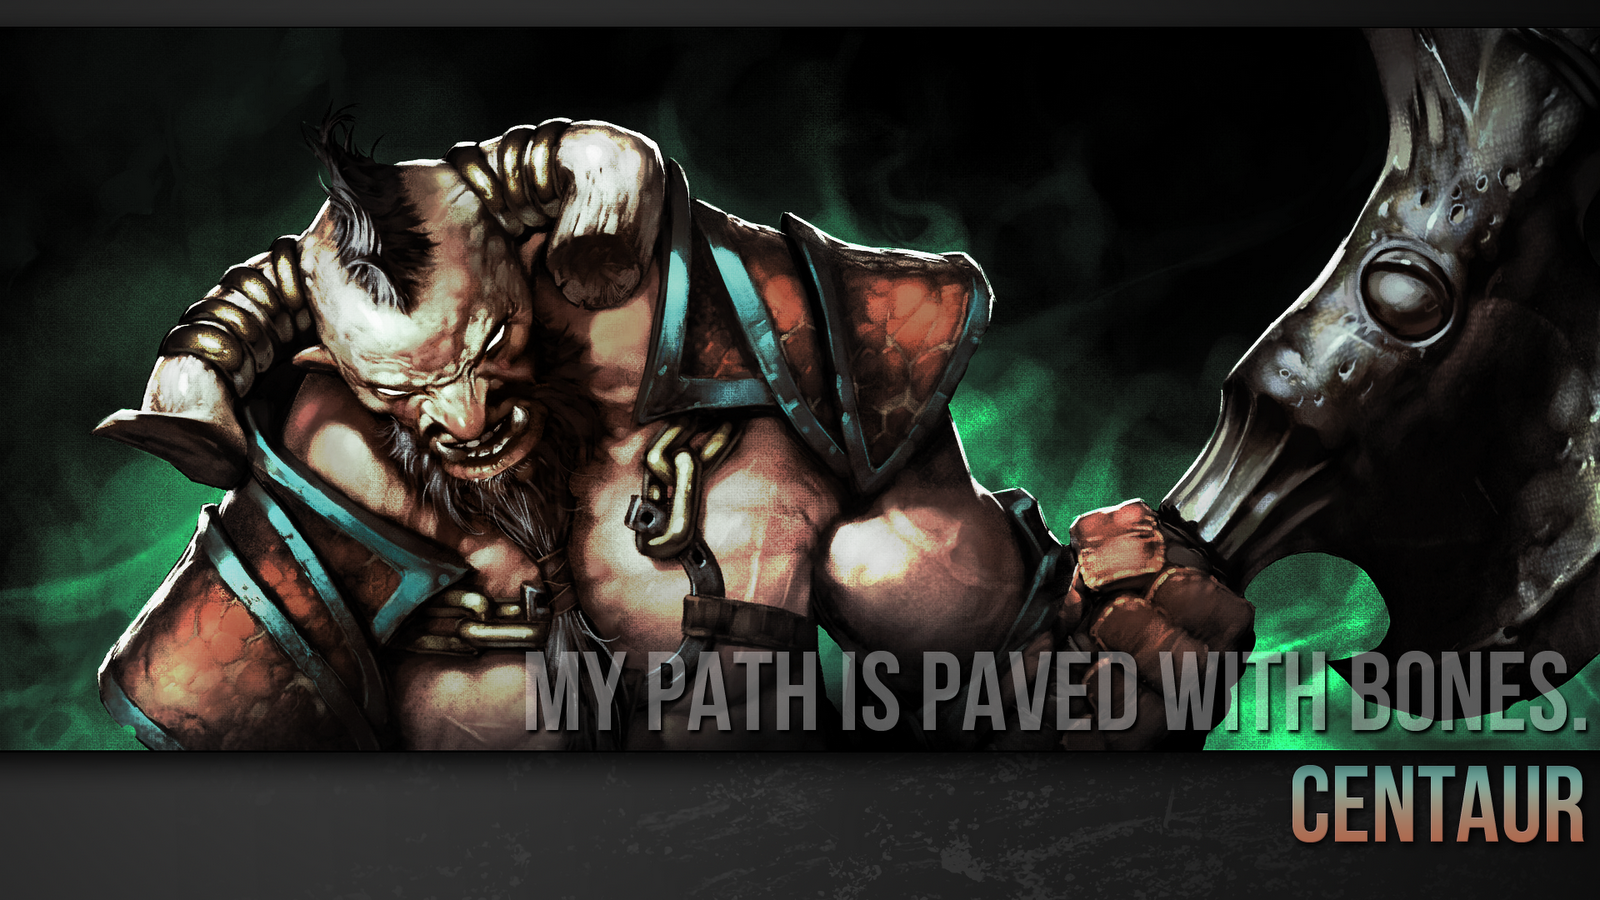 Centaur Wallpapers Dota 2 HD Wallpapers #4